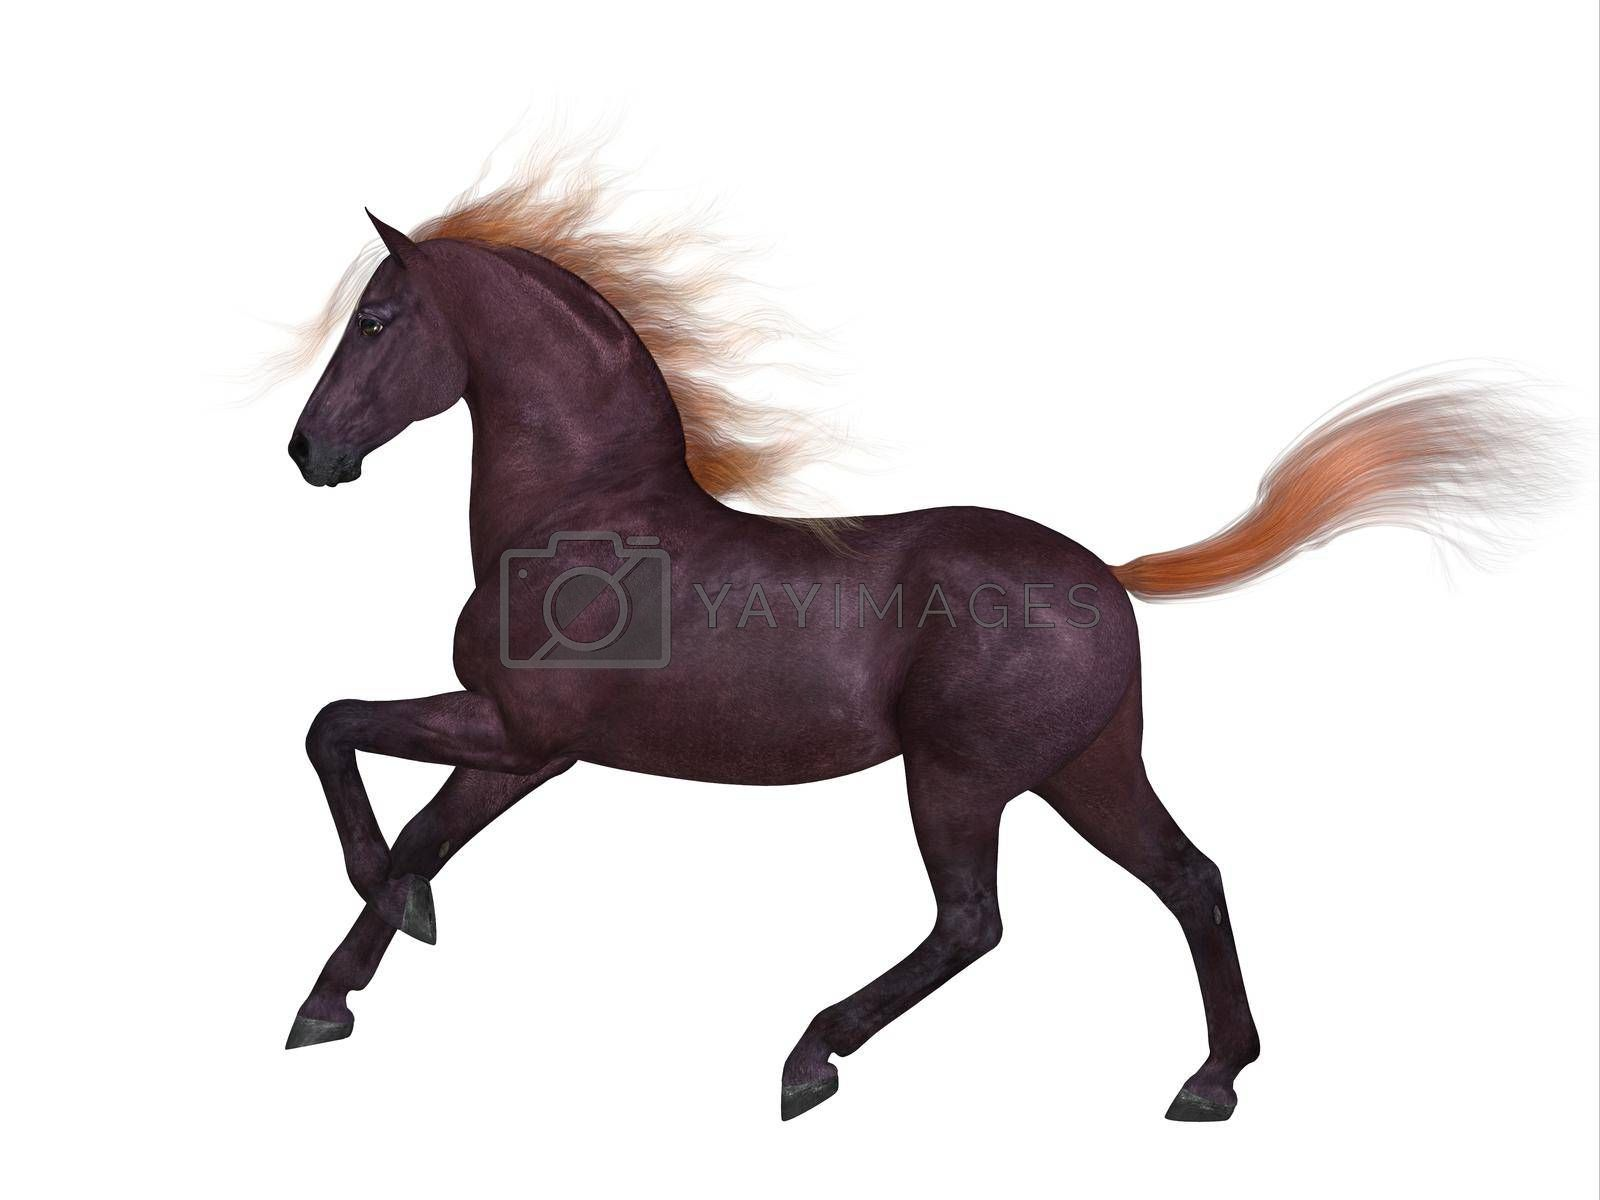 The Liver Chestnut is a coat color of many different breeds of horses and is distinguished by a lighter color in mane and tail.